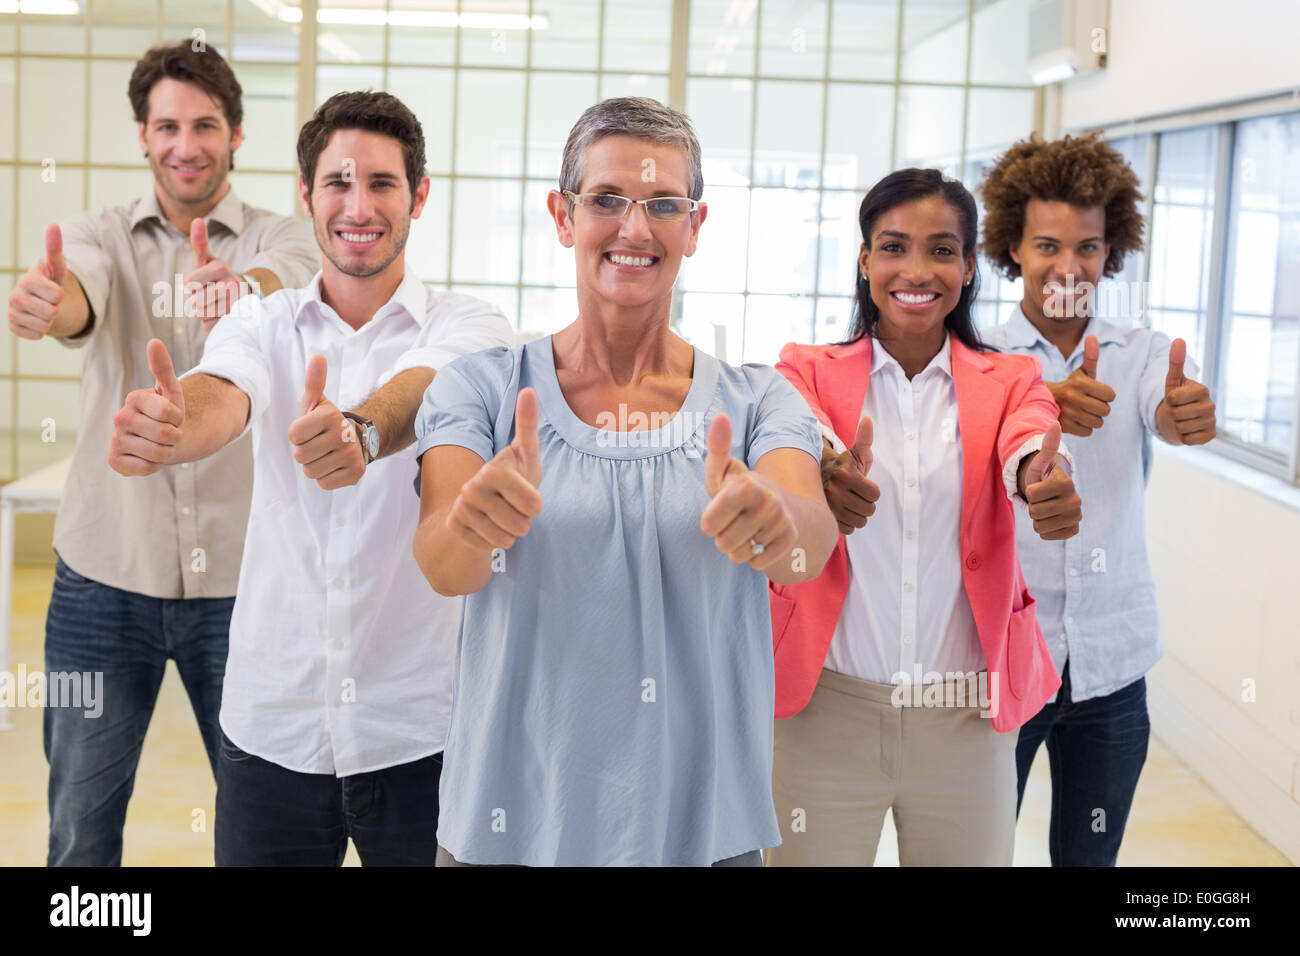 Business people giving thumbs up to camera and smiling - Stock Image